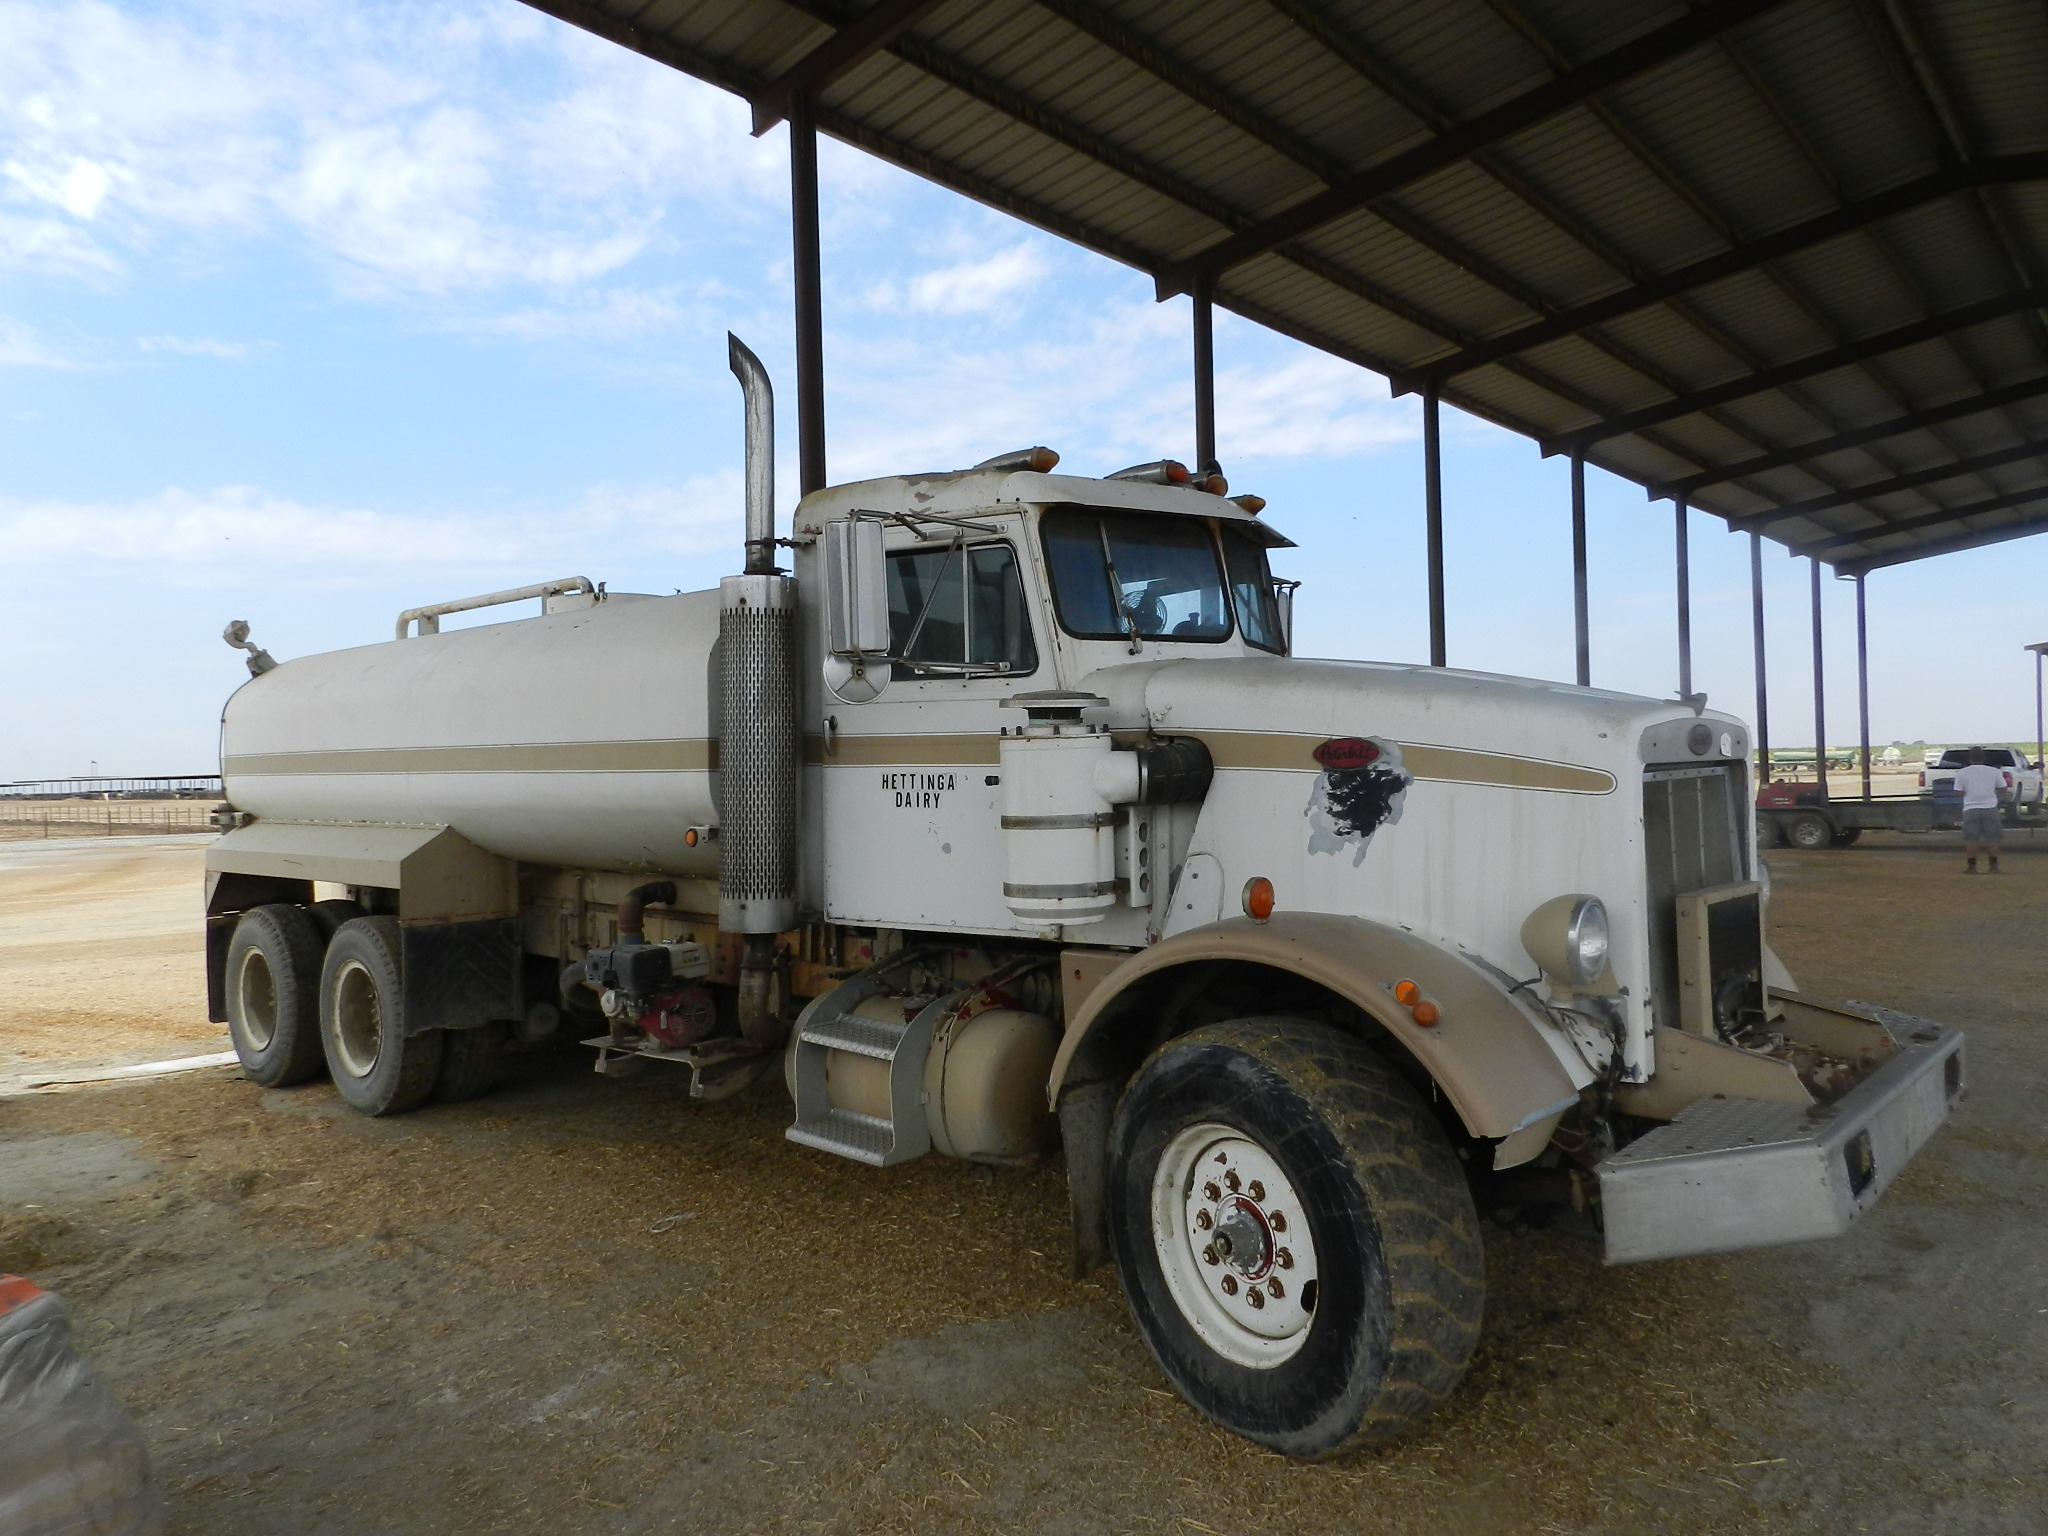 Overland Stockyard Hanford Ca Cattle Auctions Dairy Dispersals 1971 Ford Dump Truck 150 L8000 Vin 43793 118000 Miles